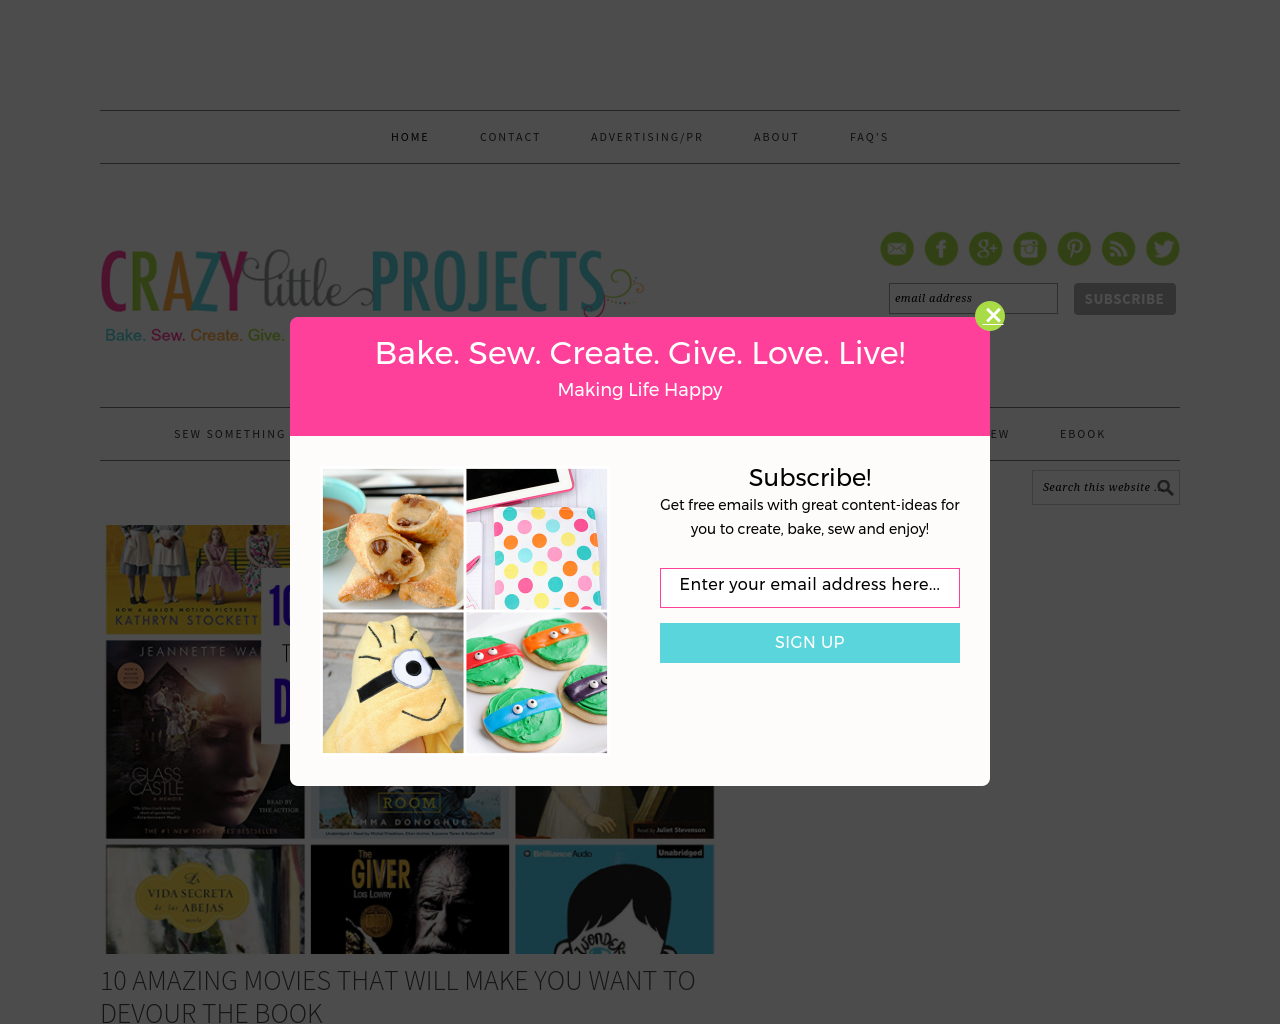 Crazy-Little-Projects-Advertising-Reviews-Pricing